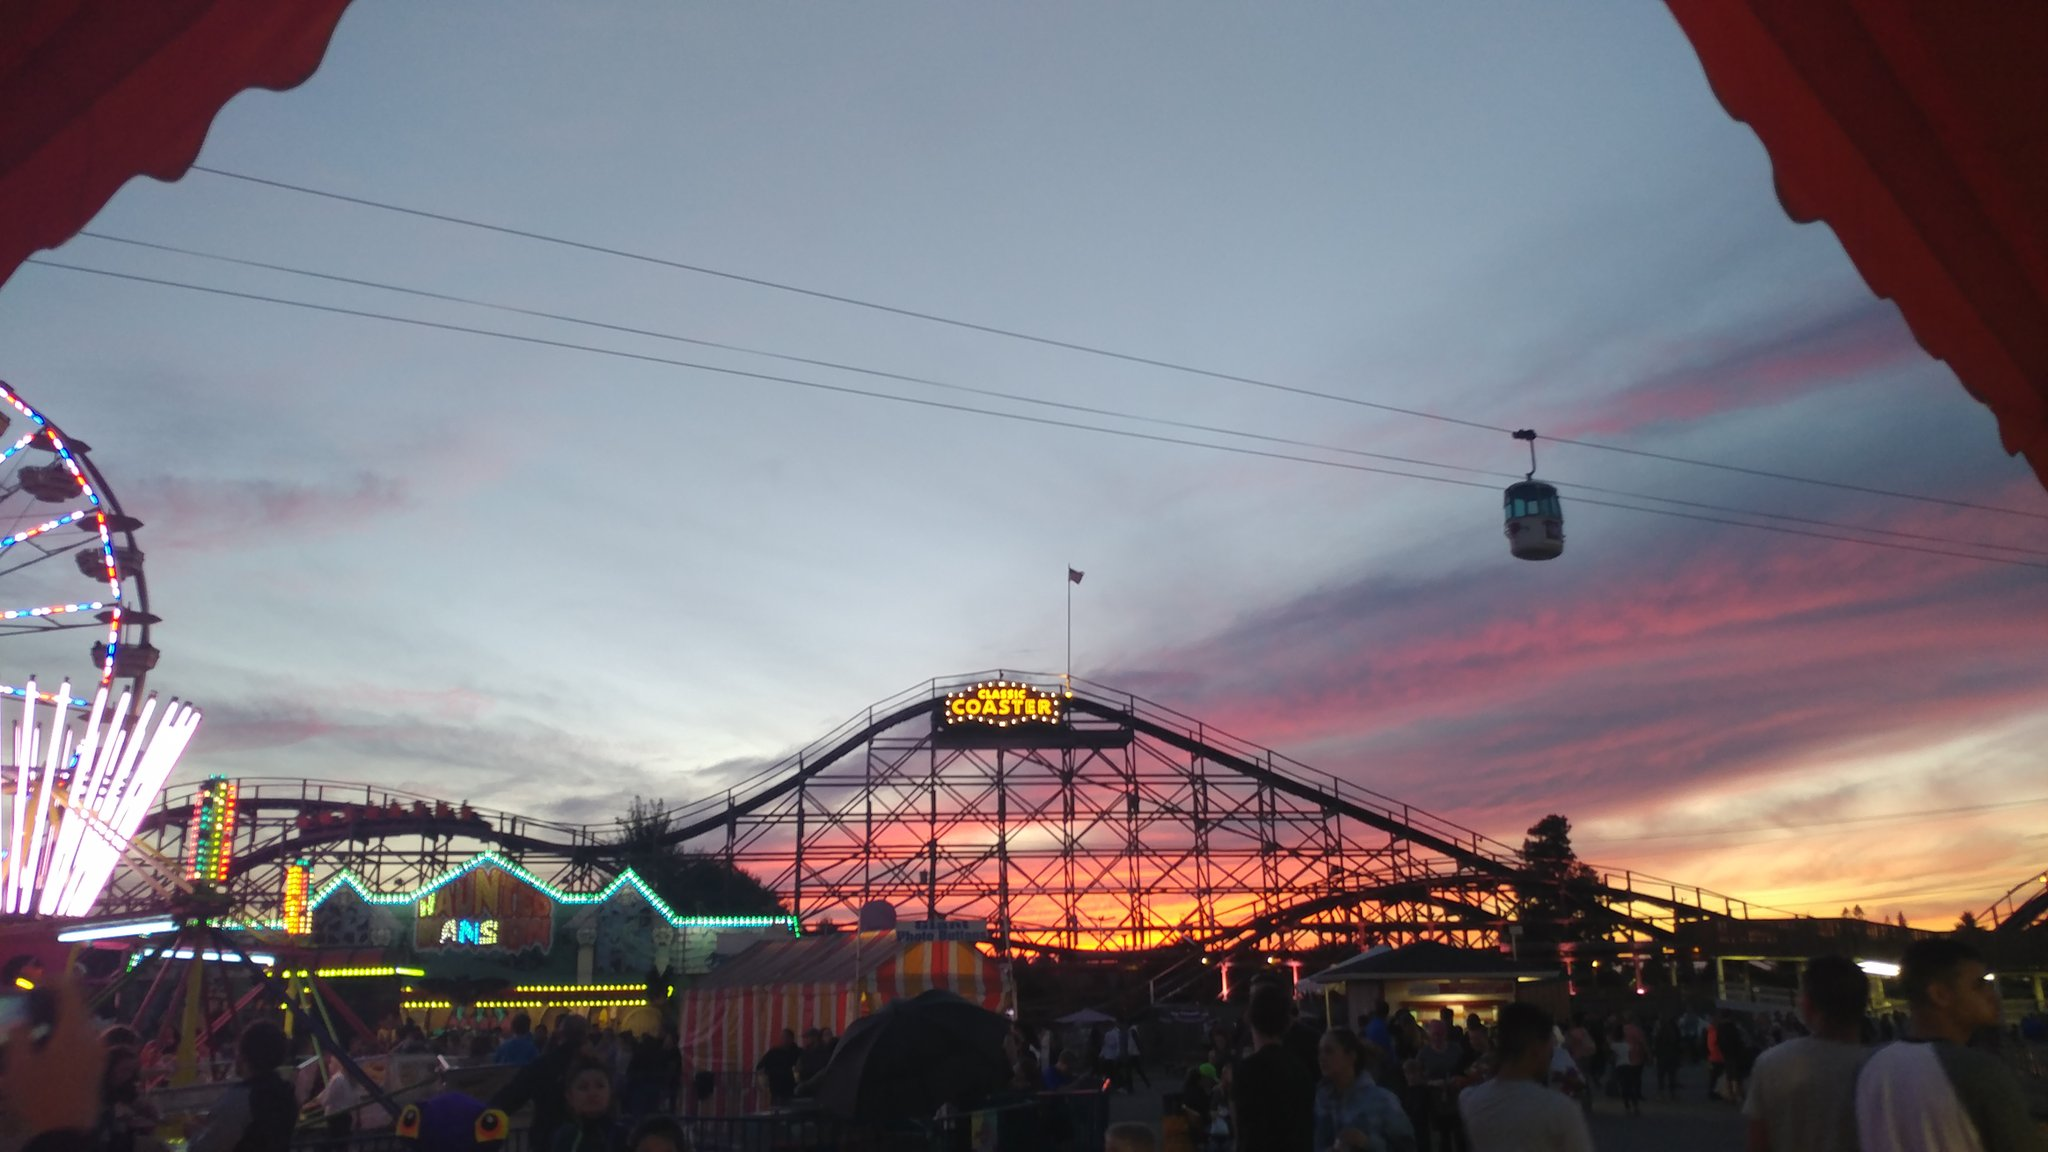 Sunset at the Washington State Fairgrounds in Puyallup, Wash. (Photo: Maewolf/Twitter)